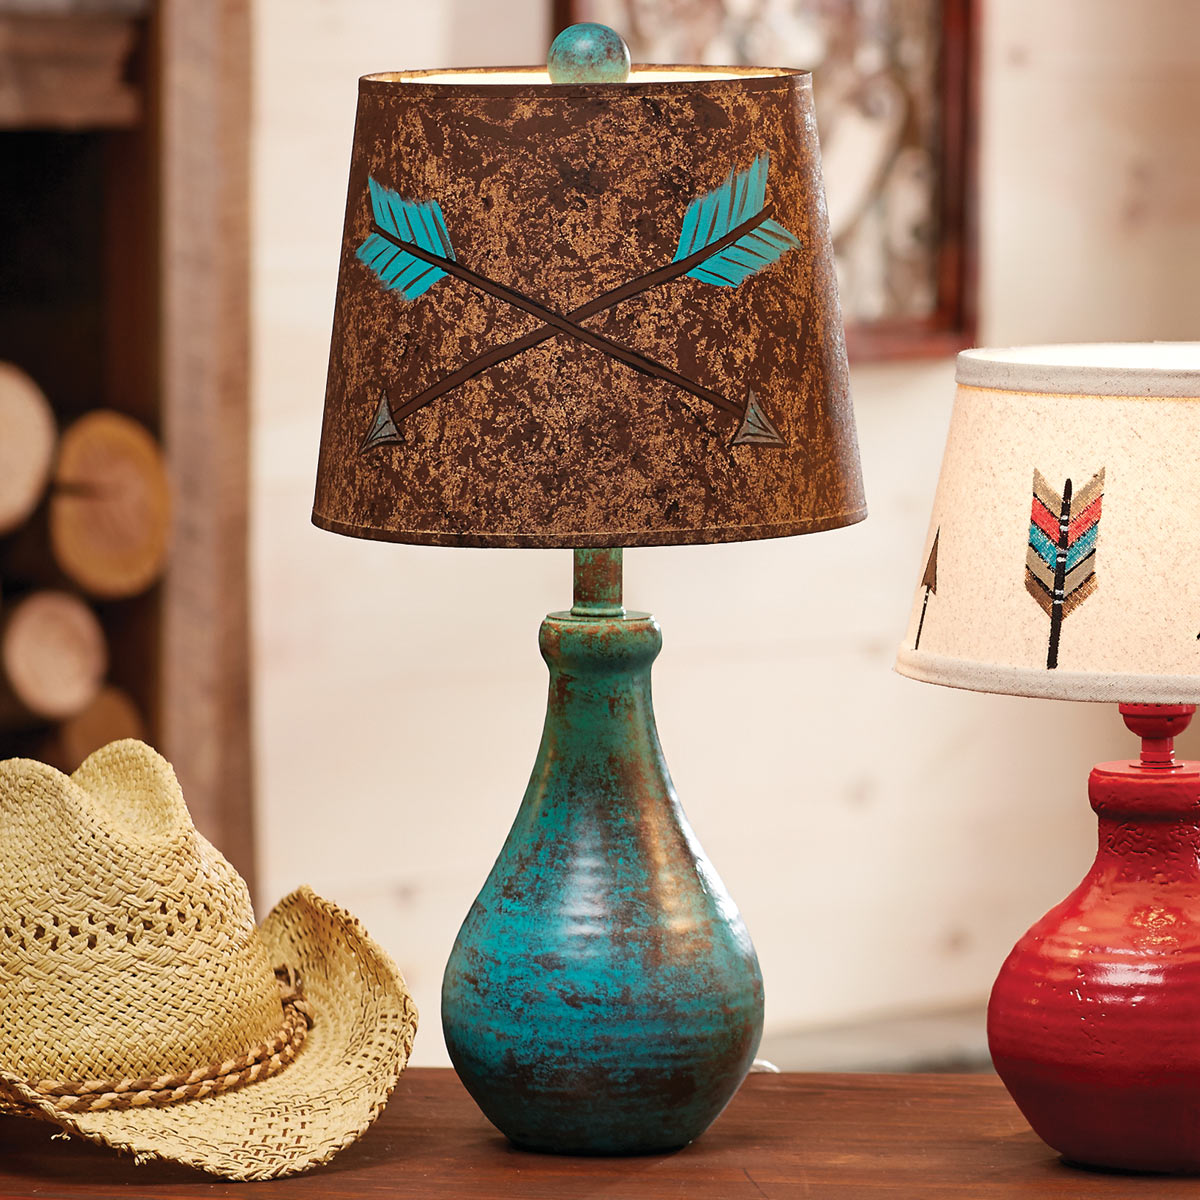 Lone Star Western Decor Turquoise crossed arrows table lamp